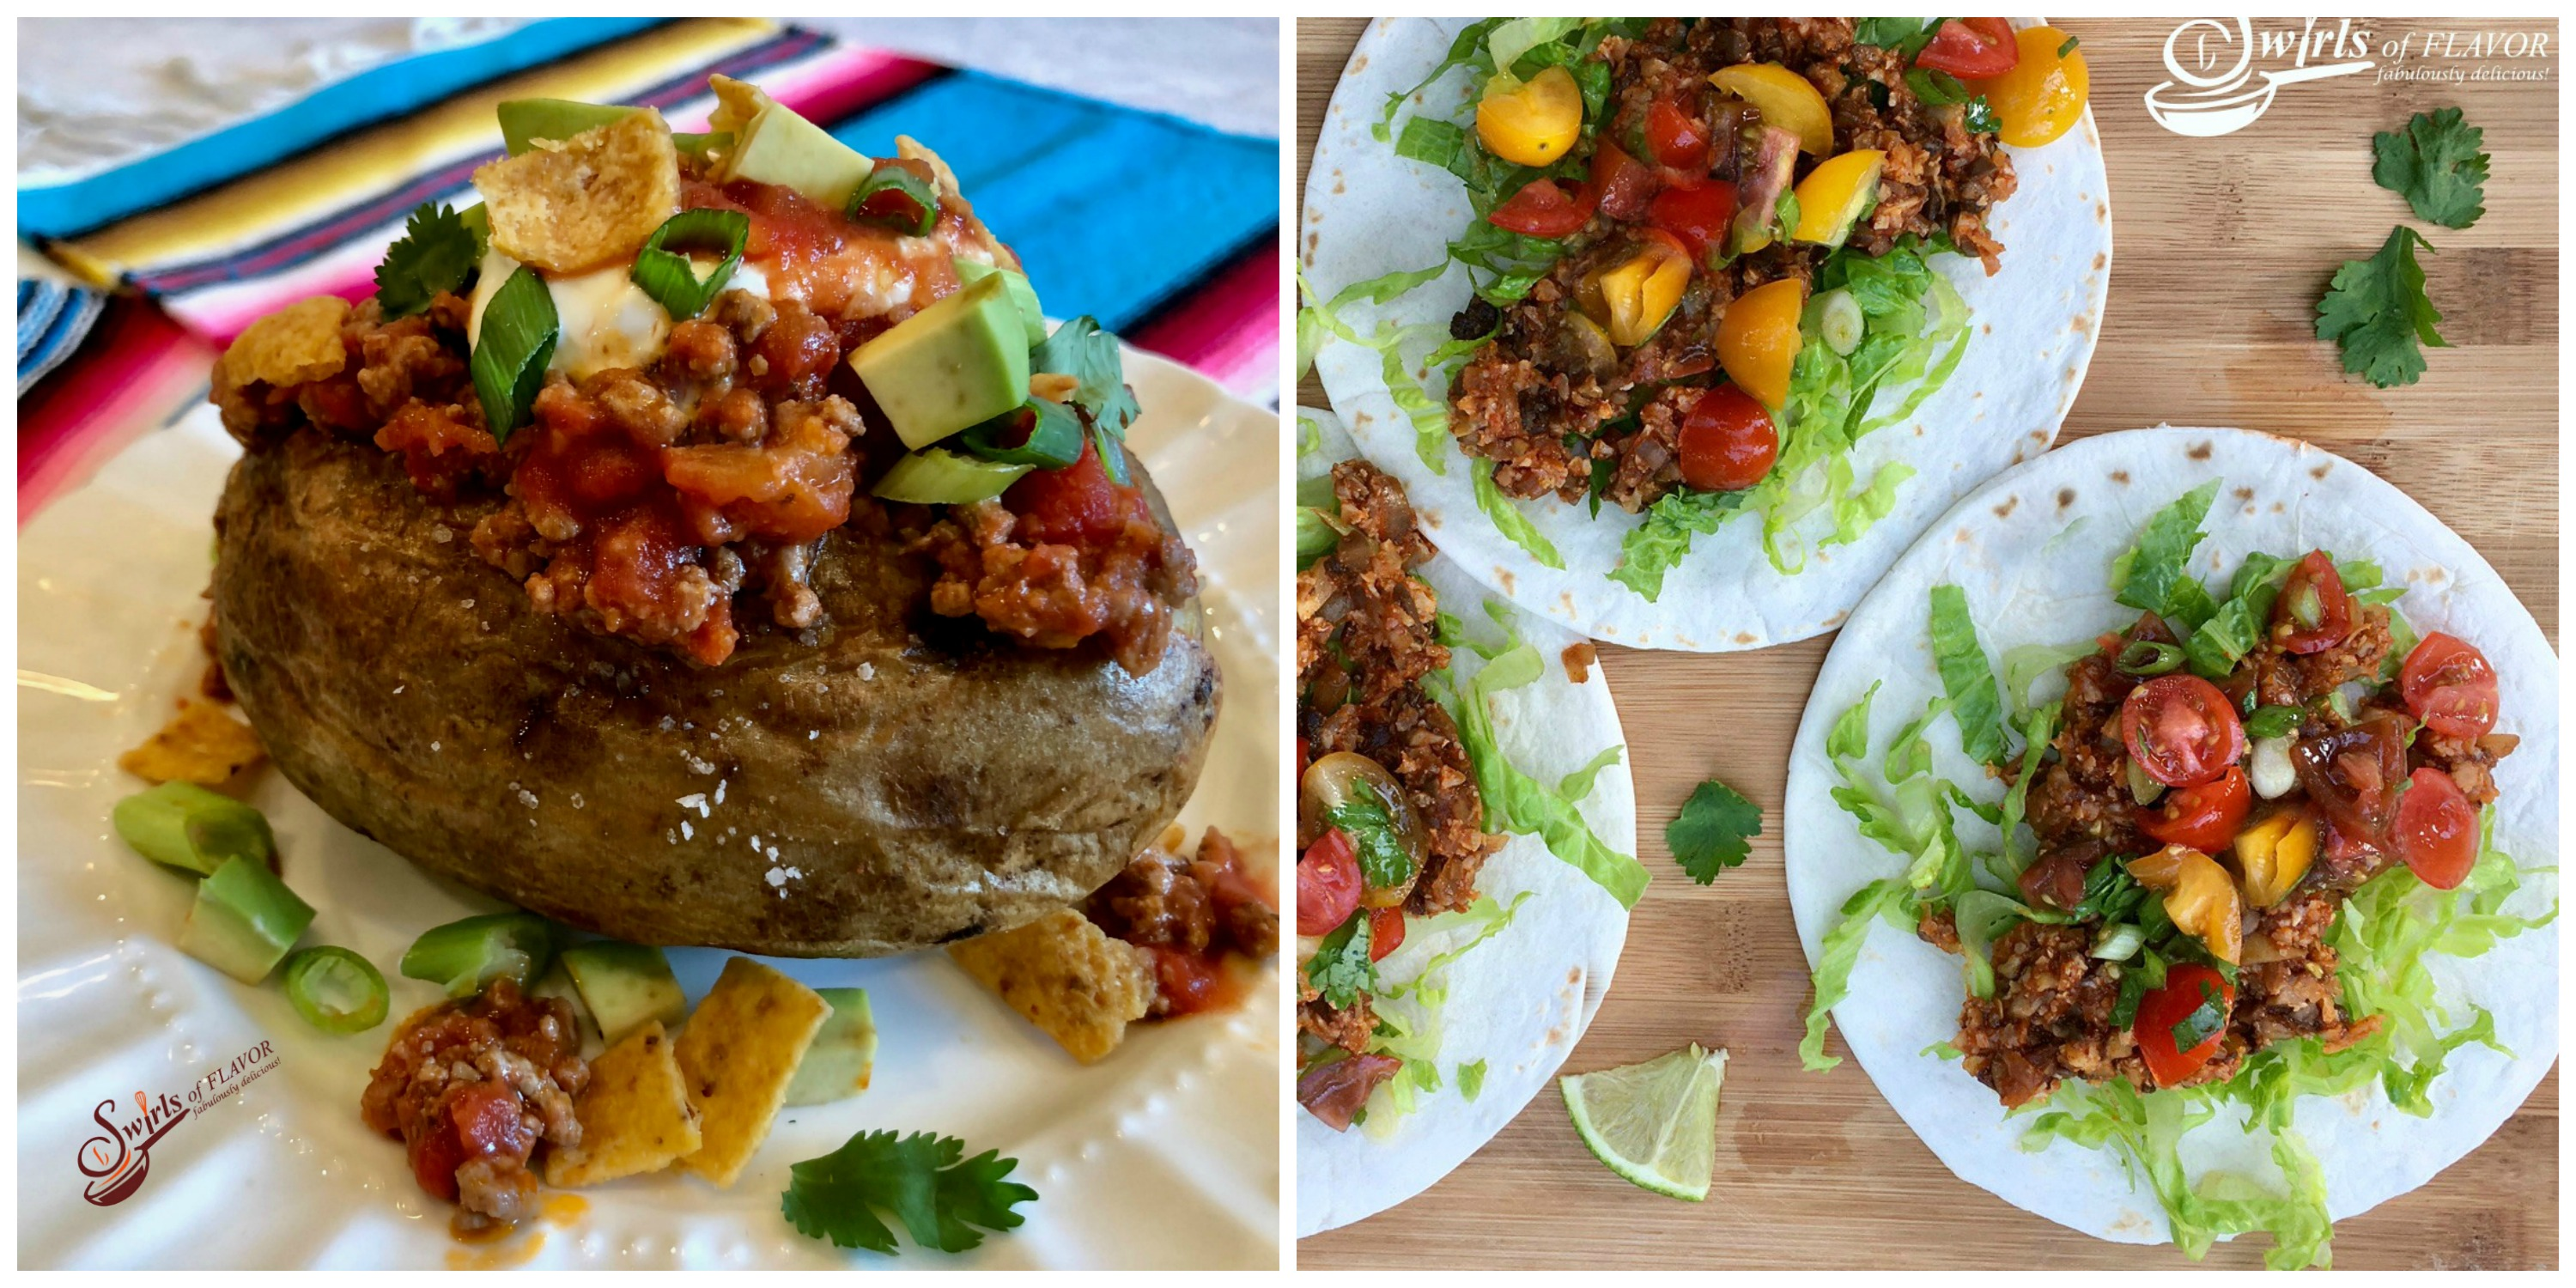 Taco Stuffed Potato and Cauliflower Tacos